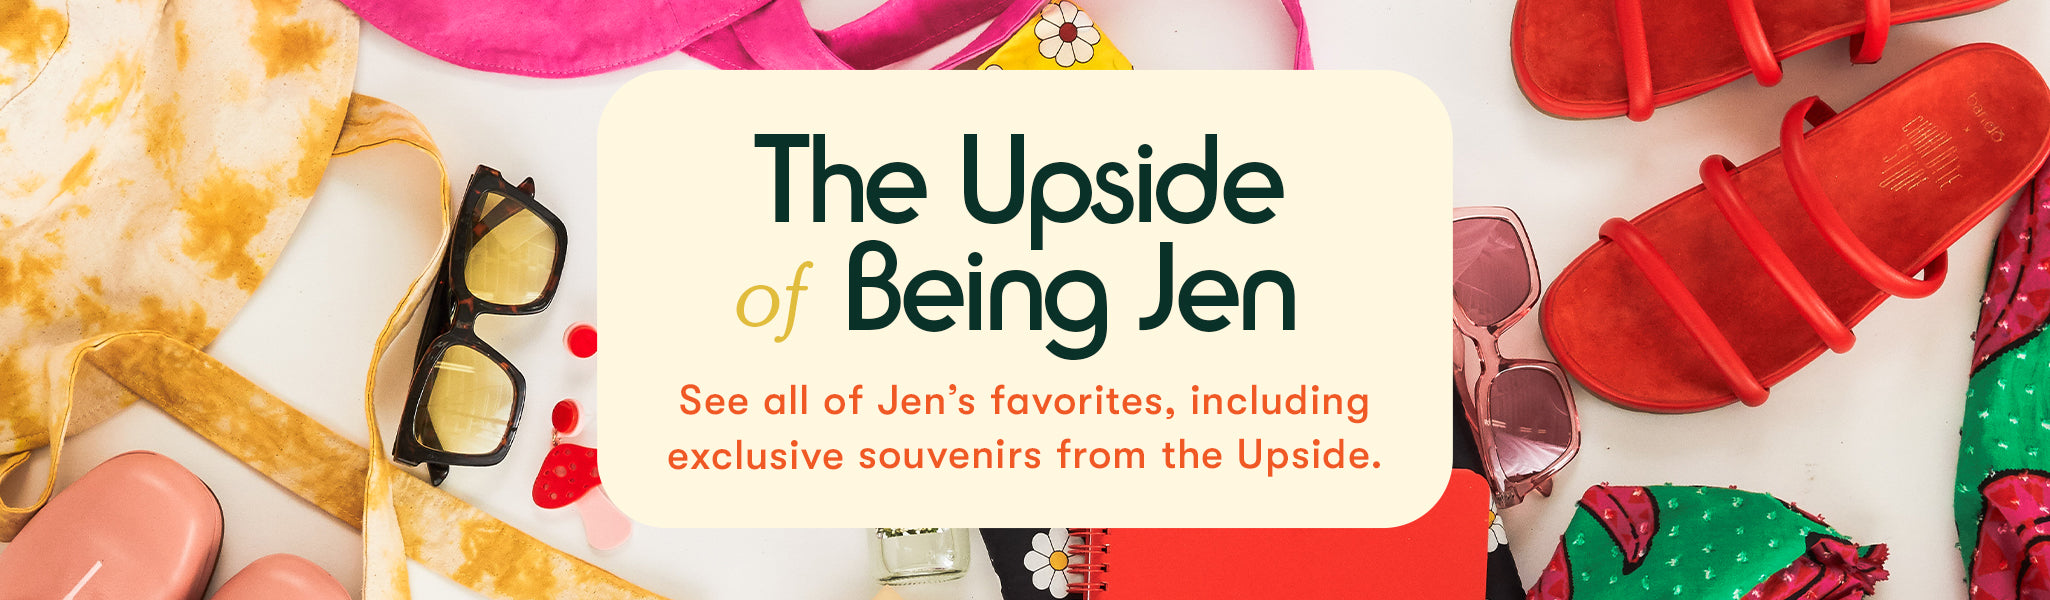 See all of Jen's favorites, including exclusive souvenirs from the Upside